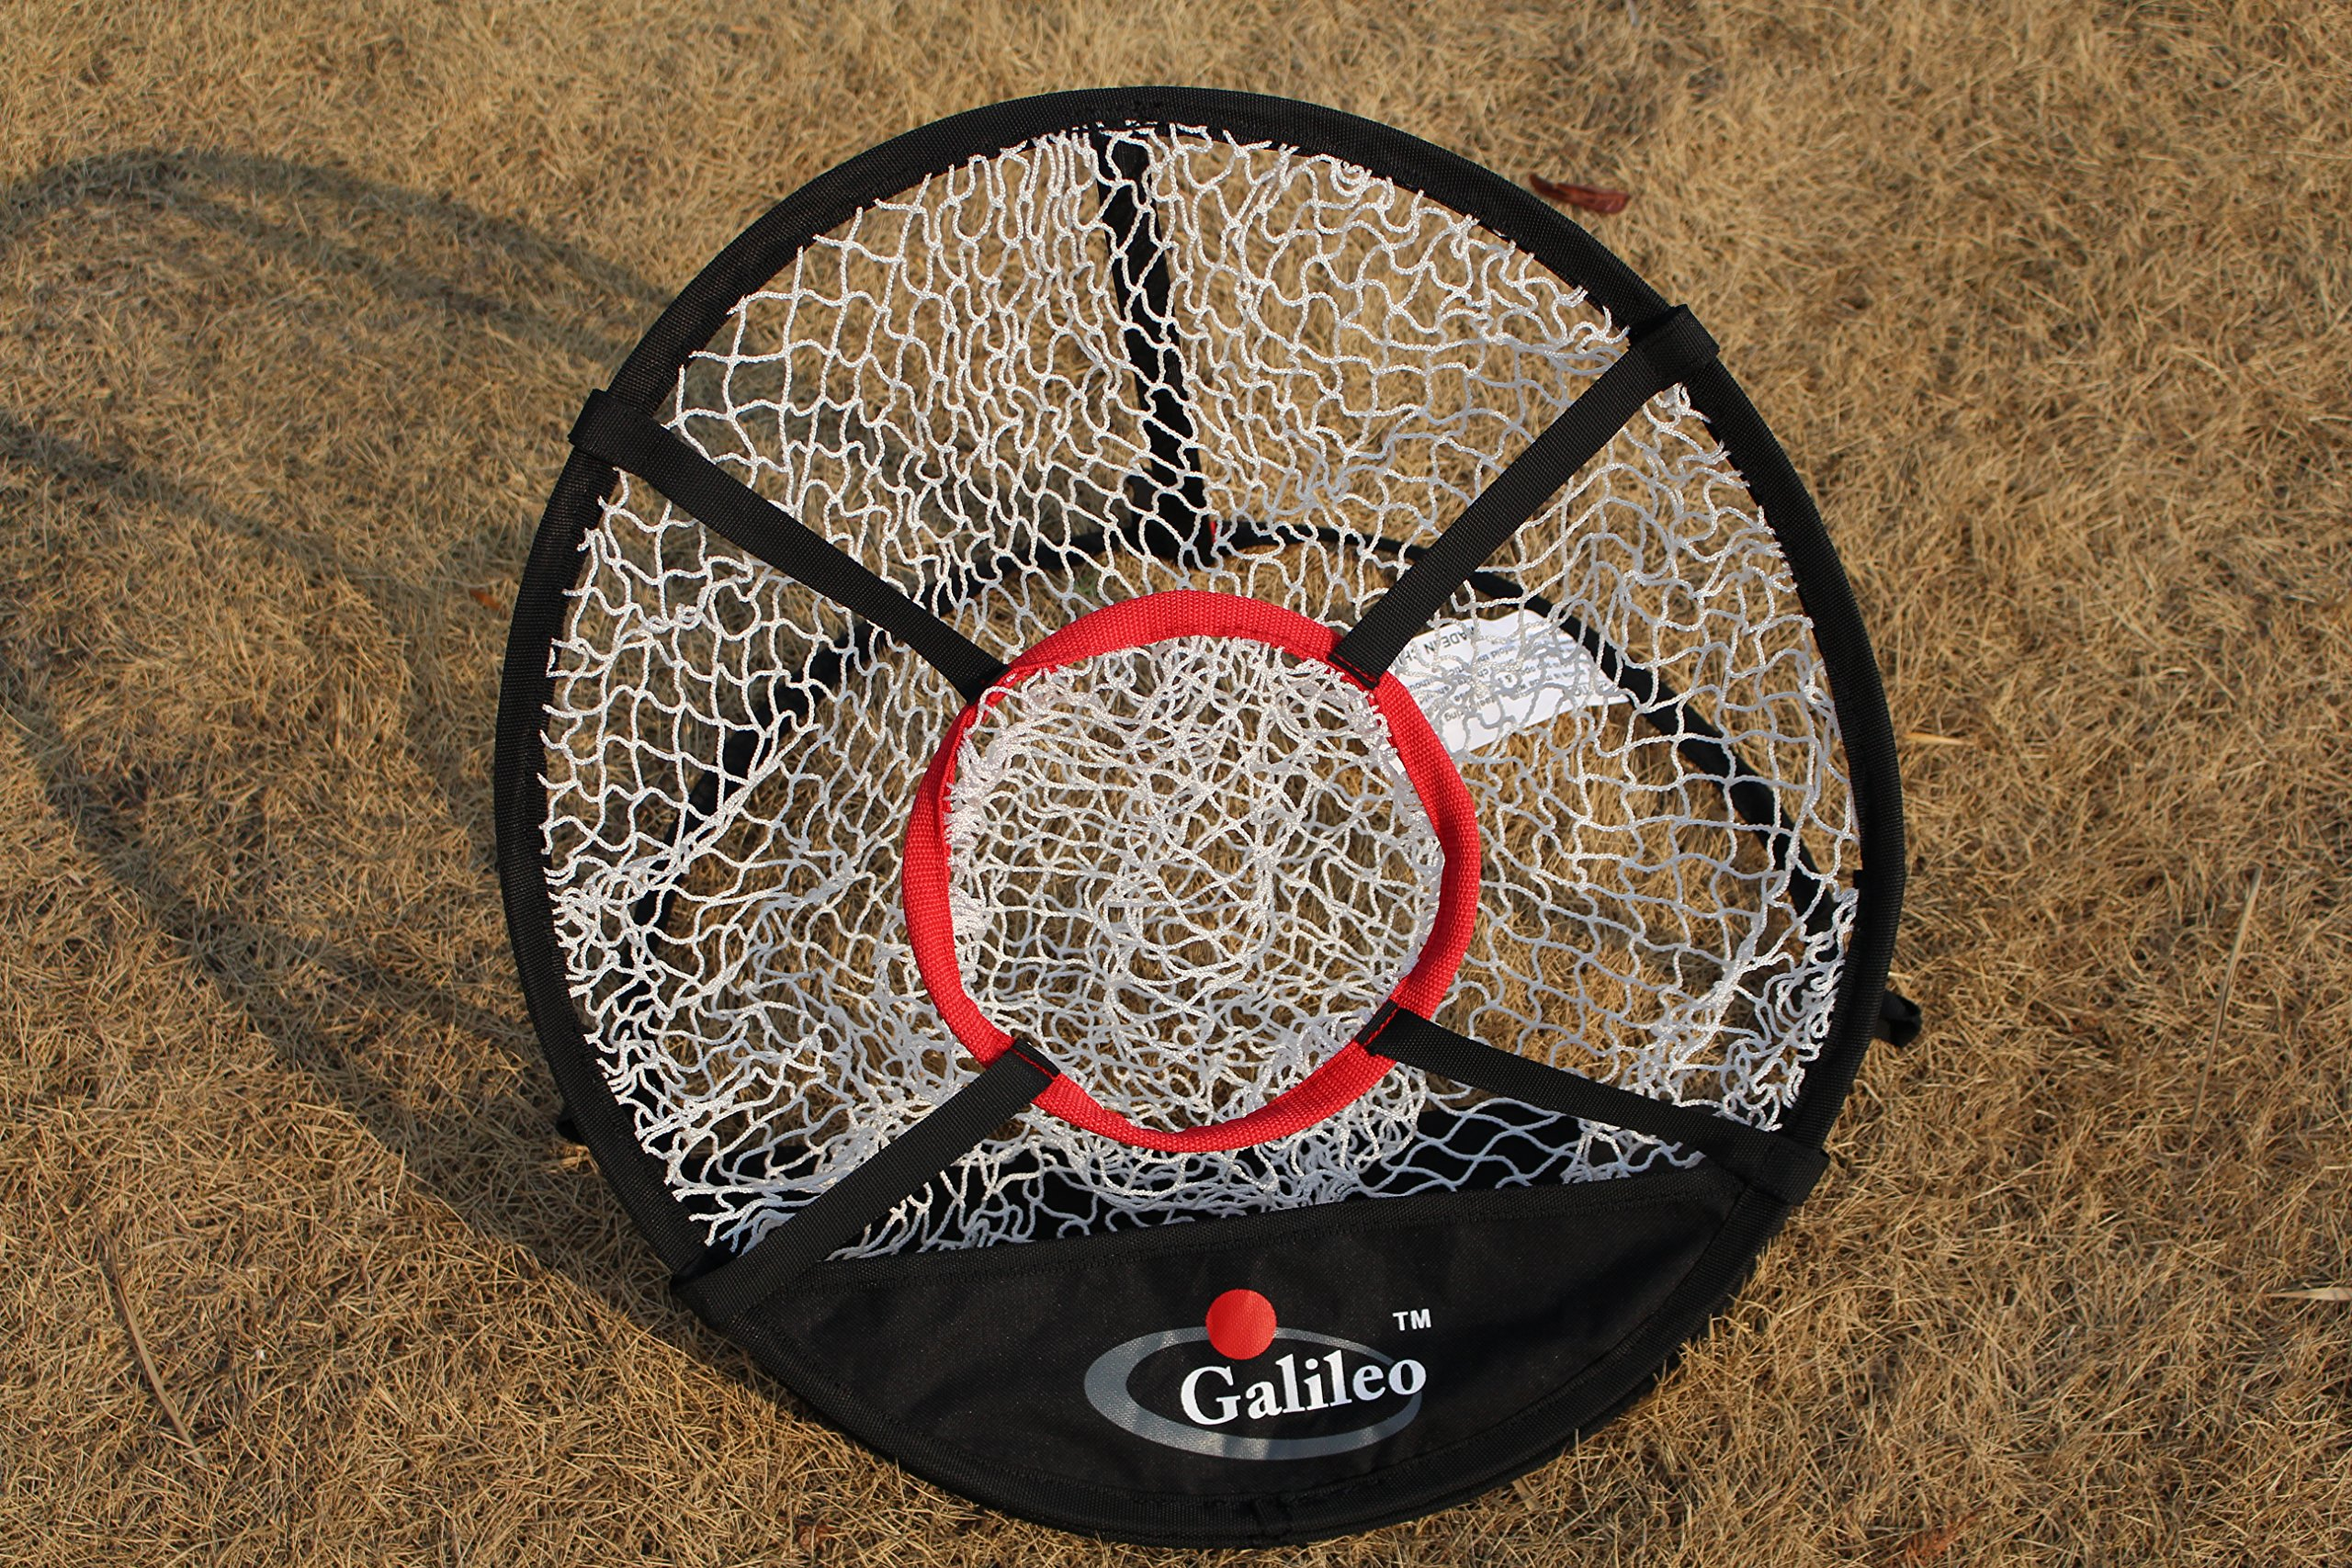 Golf net with Target net Diameter 50cm ' Pop Up Golf Chipping Net   Outdoor & Indoor Golfing Target Accessories and Backyard Practice Swing Game by Galileo (Image #2)